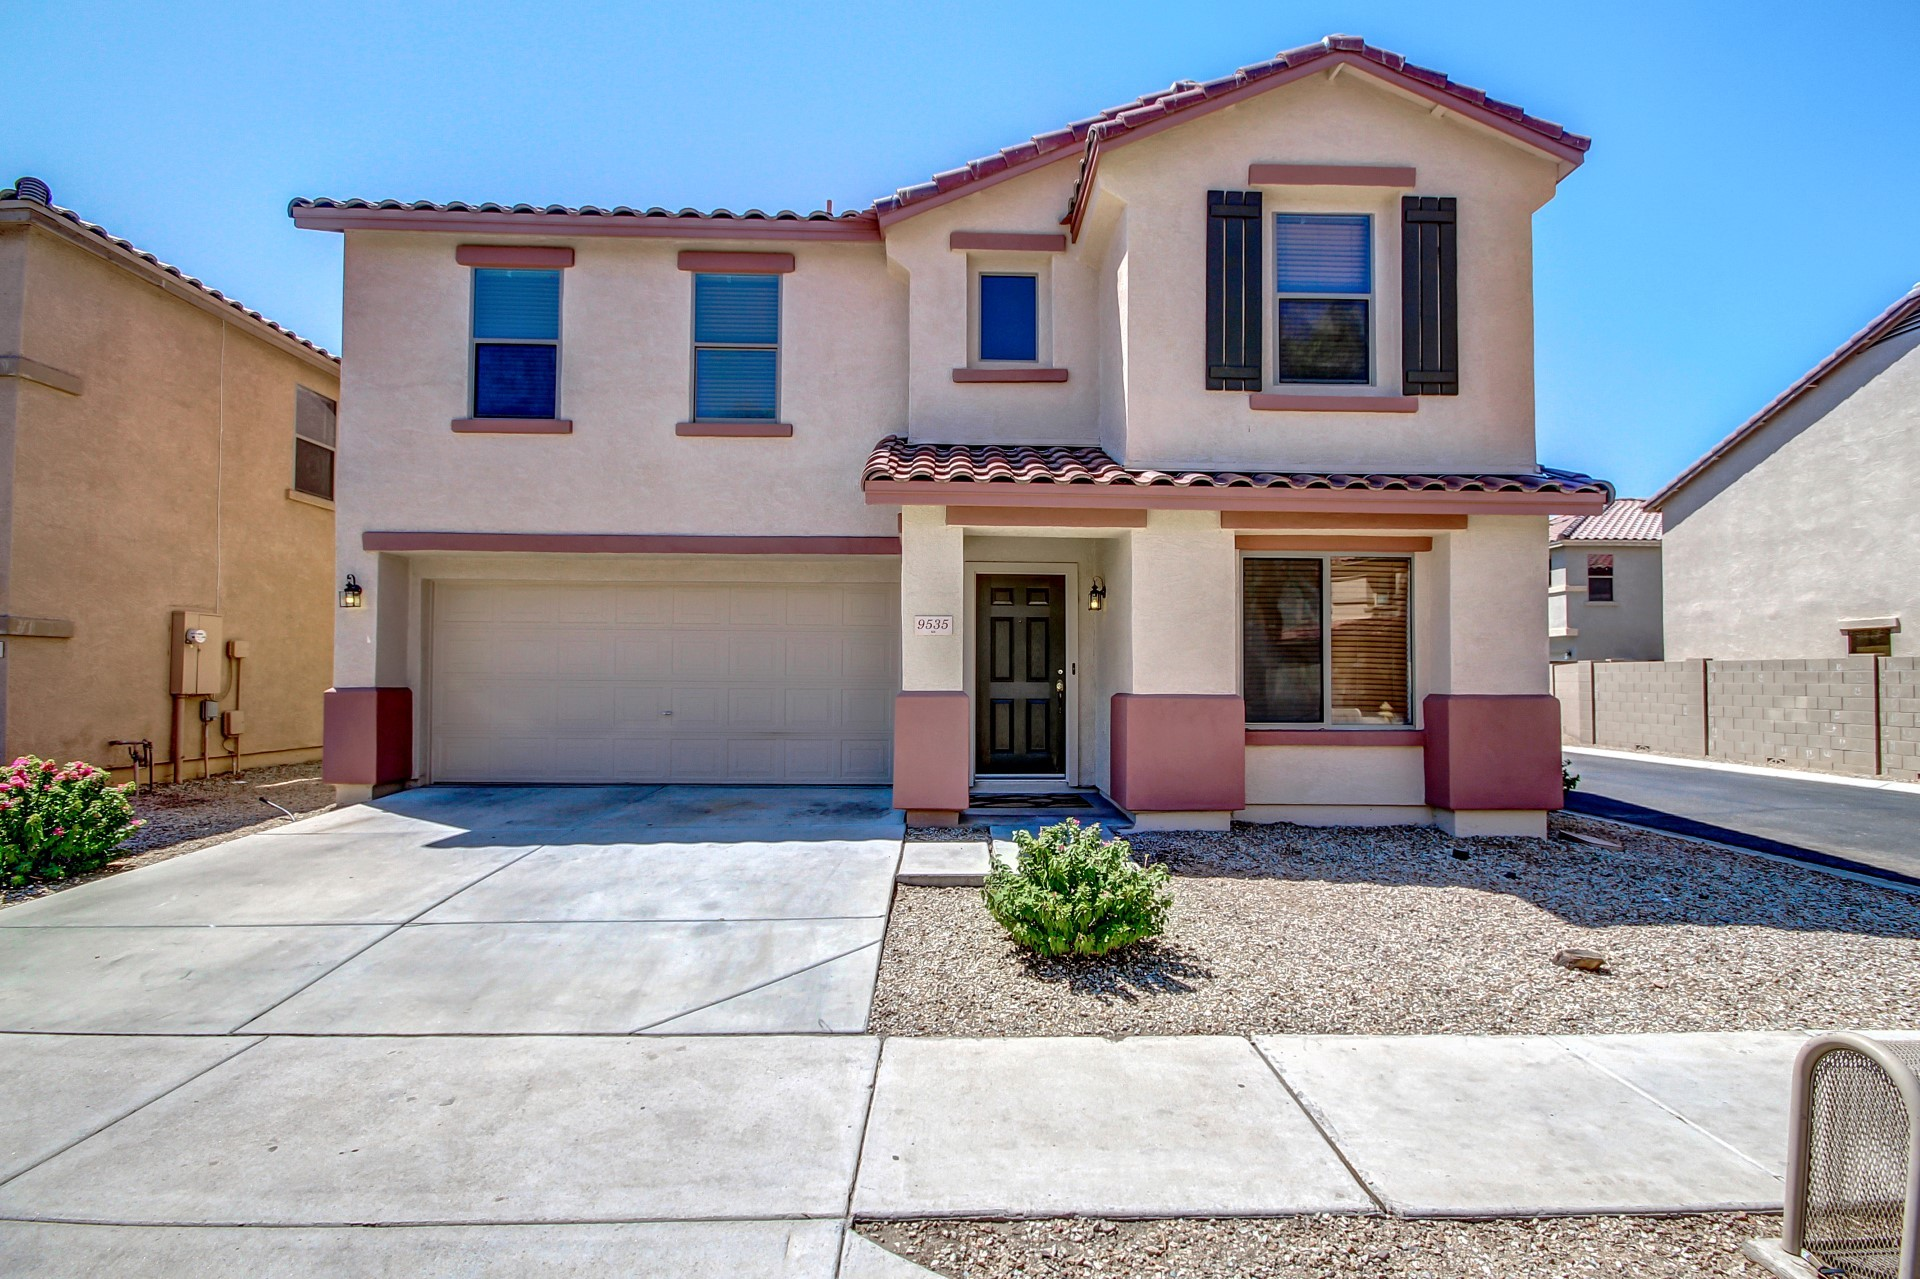 SOLD – Bright and Spacious ~ 4 bedroom ~ 2.5 bathroom ~ large open loft area ~ approx 2461 Square Feet ~ 2 car garage – under 175k